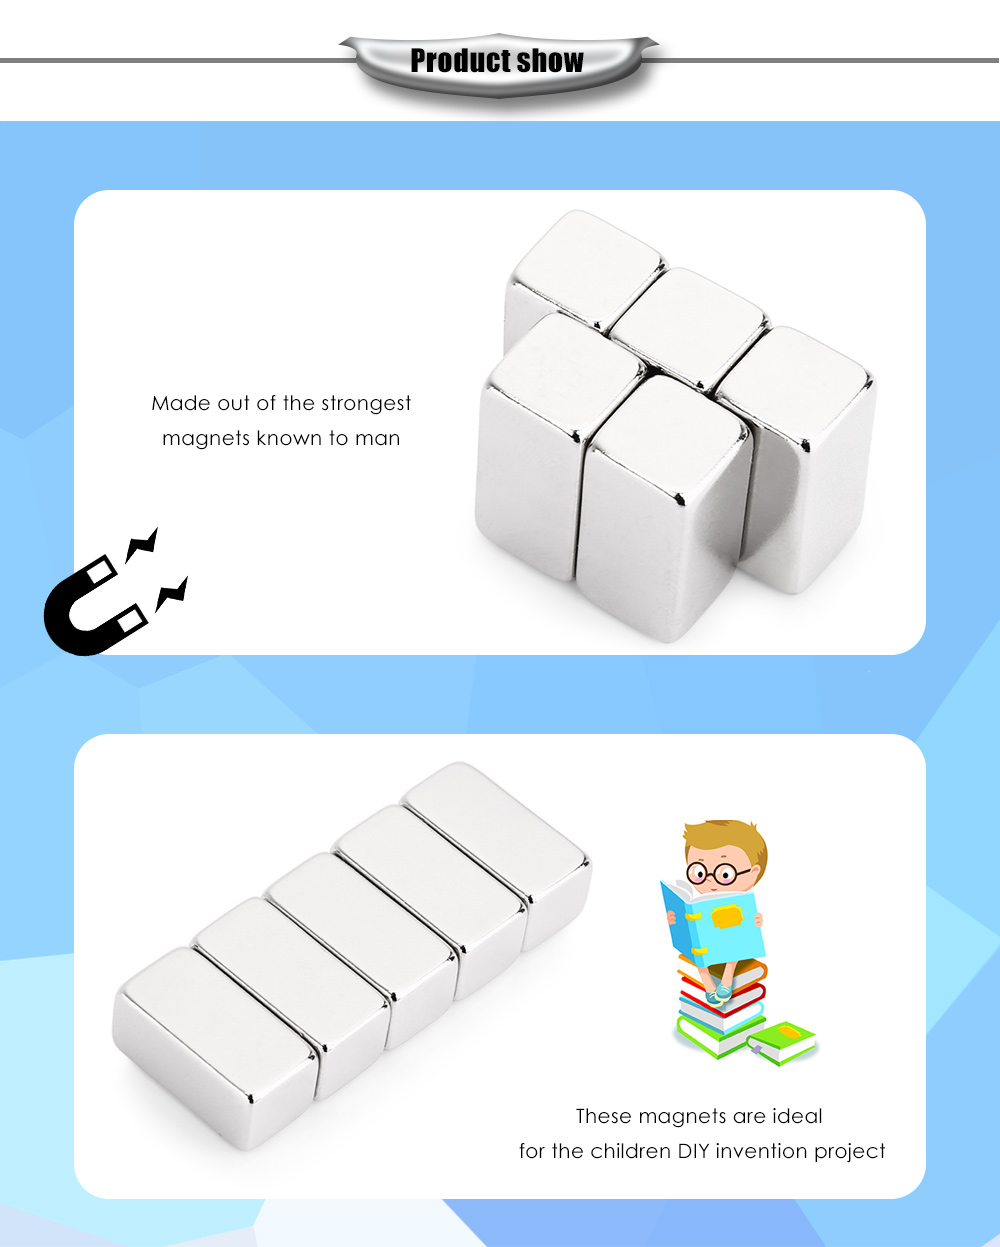 20 x 10 x 10mm N42 Strong NdFeB Square Magnet Birthday DIY Intelligent Gift - 5pcs / set